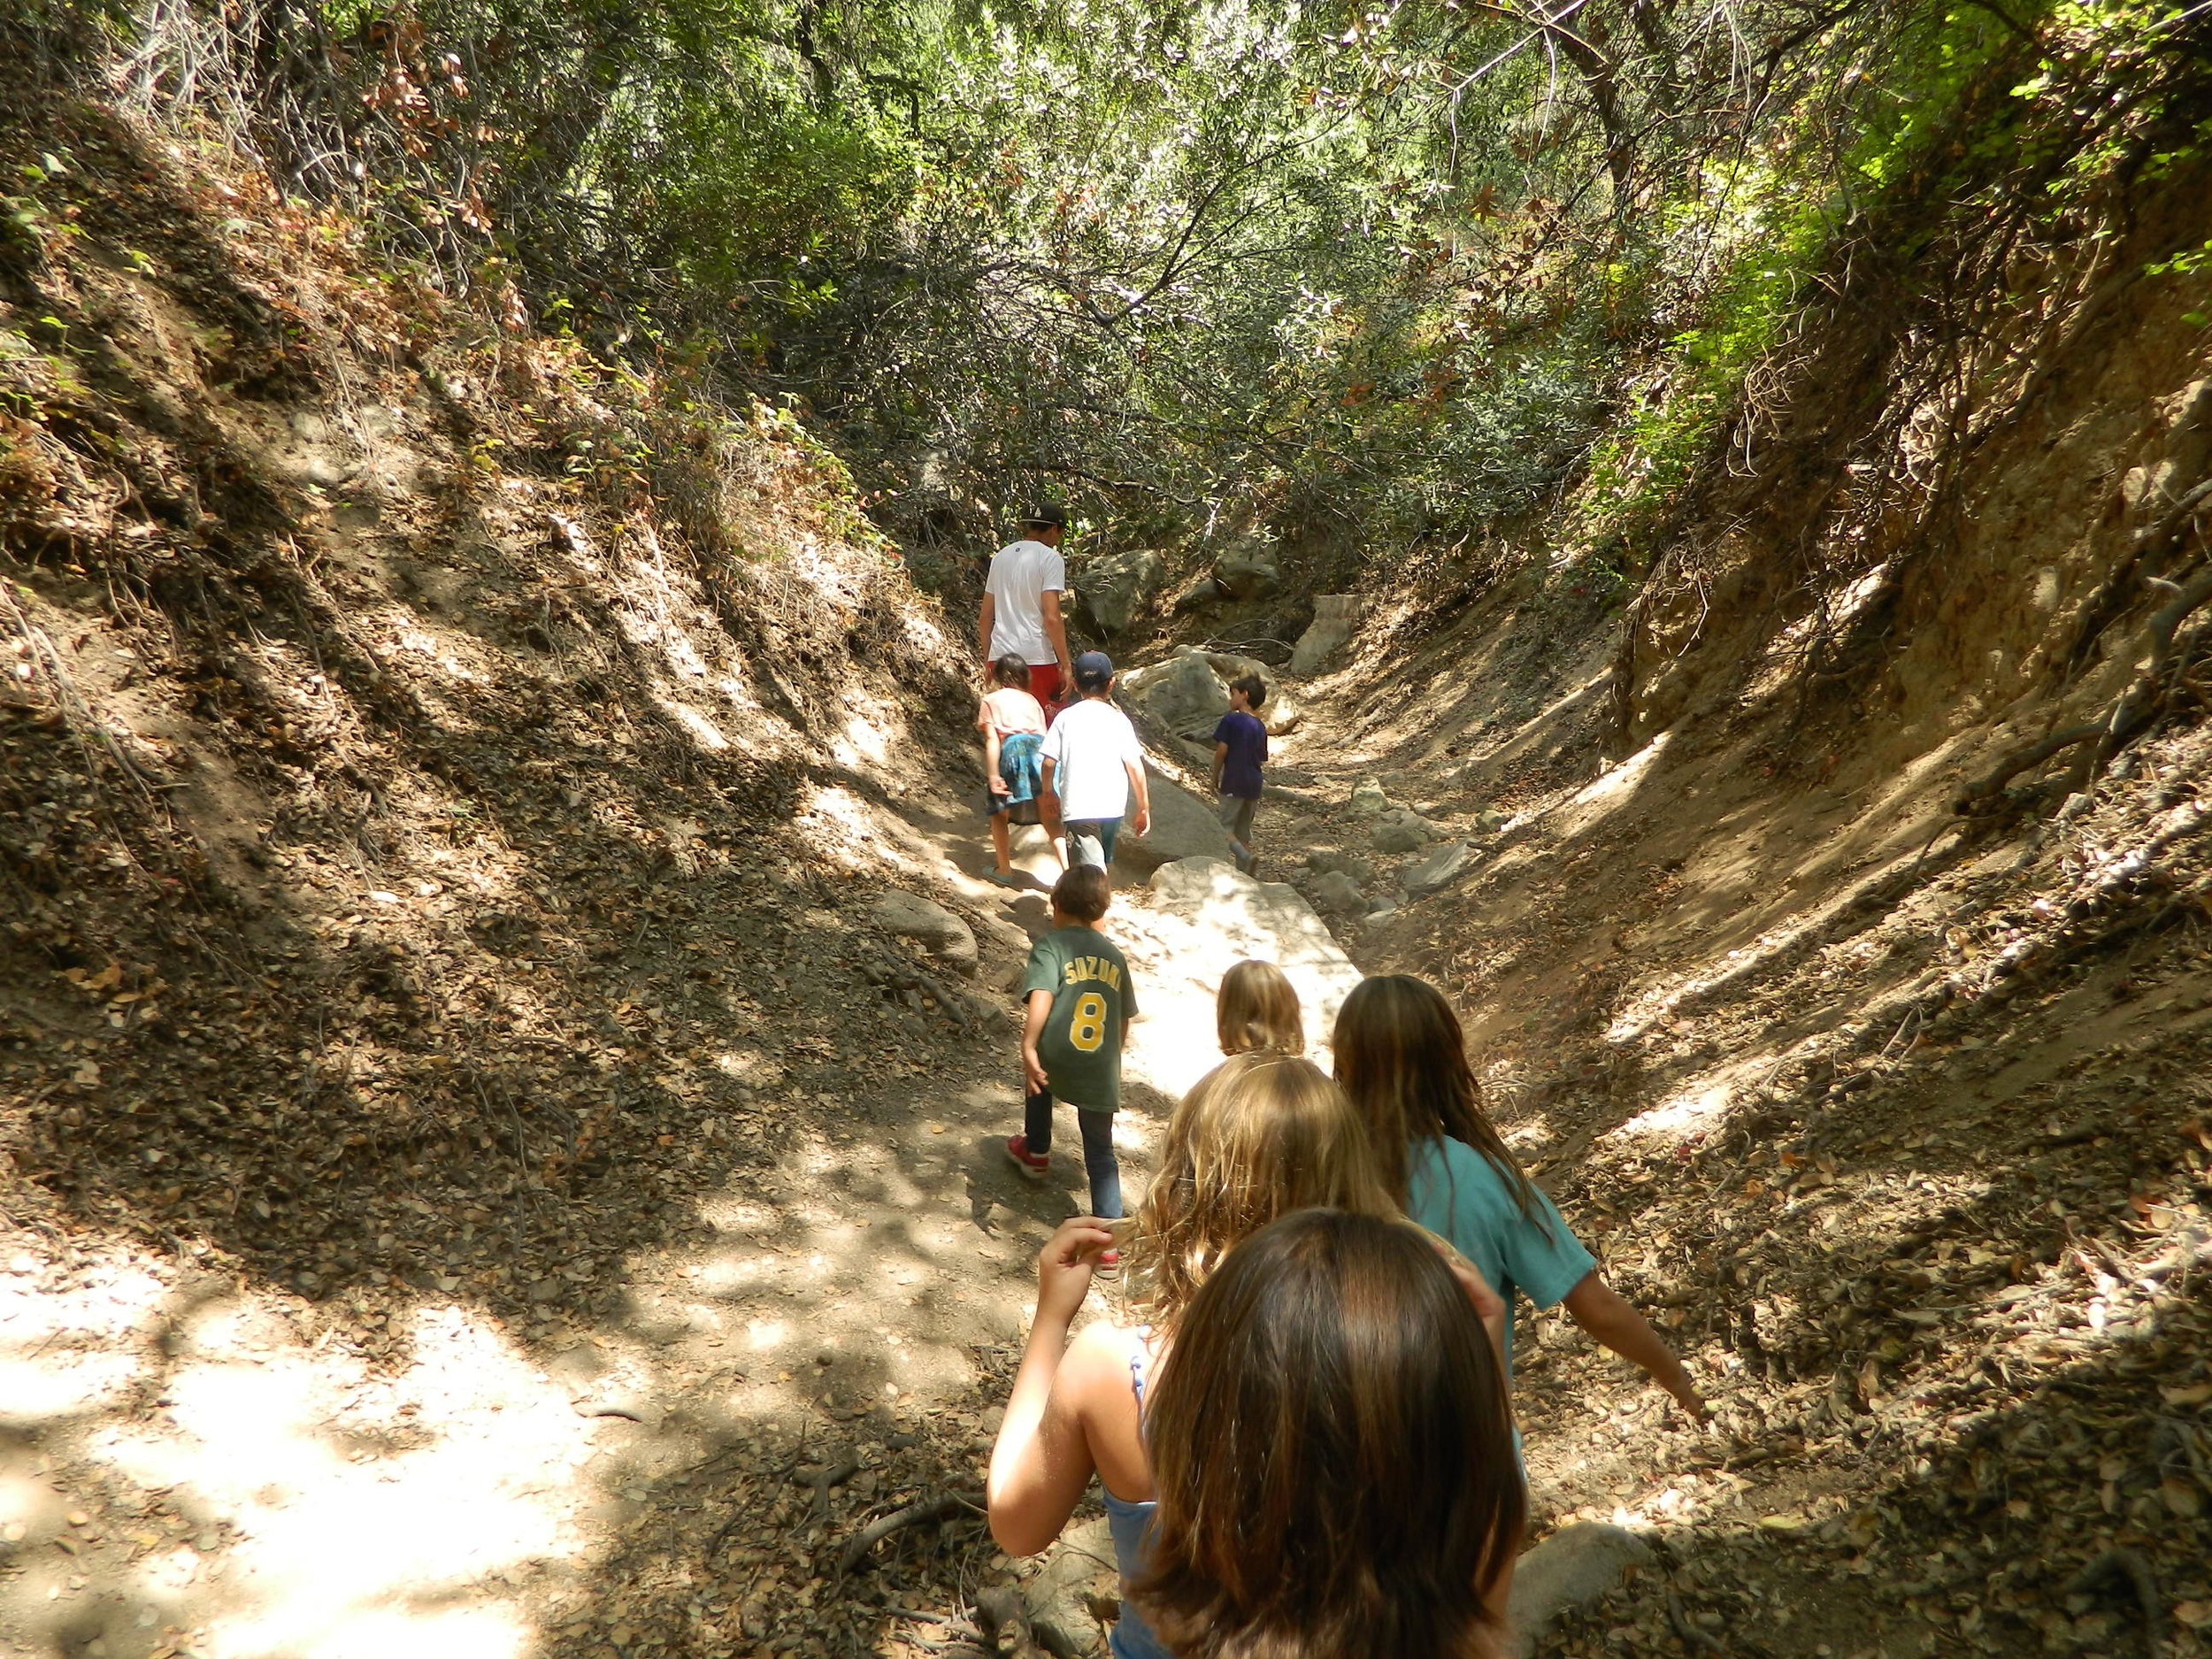 A dry creek bed serves as one hike's starting point